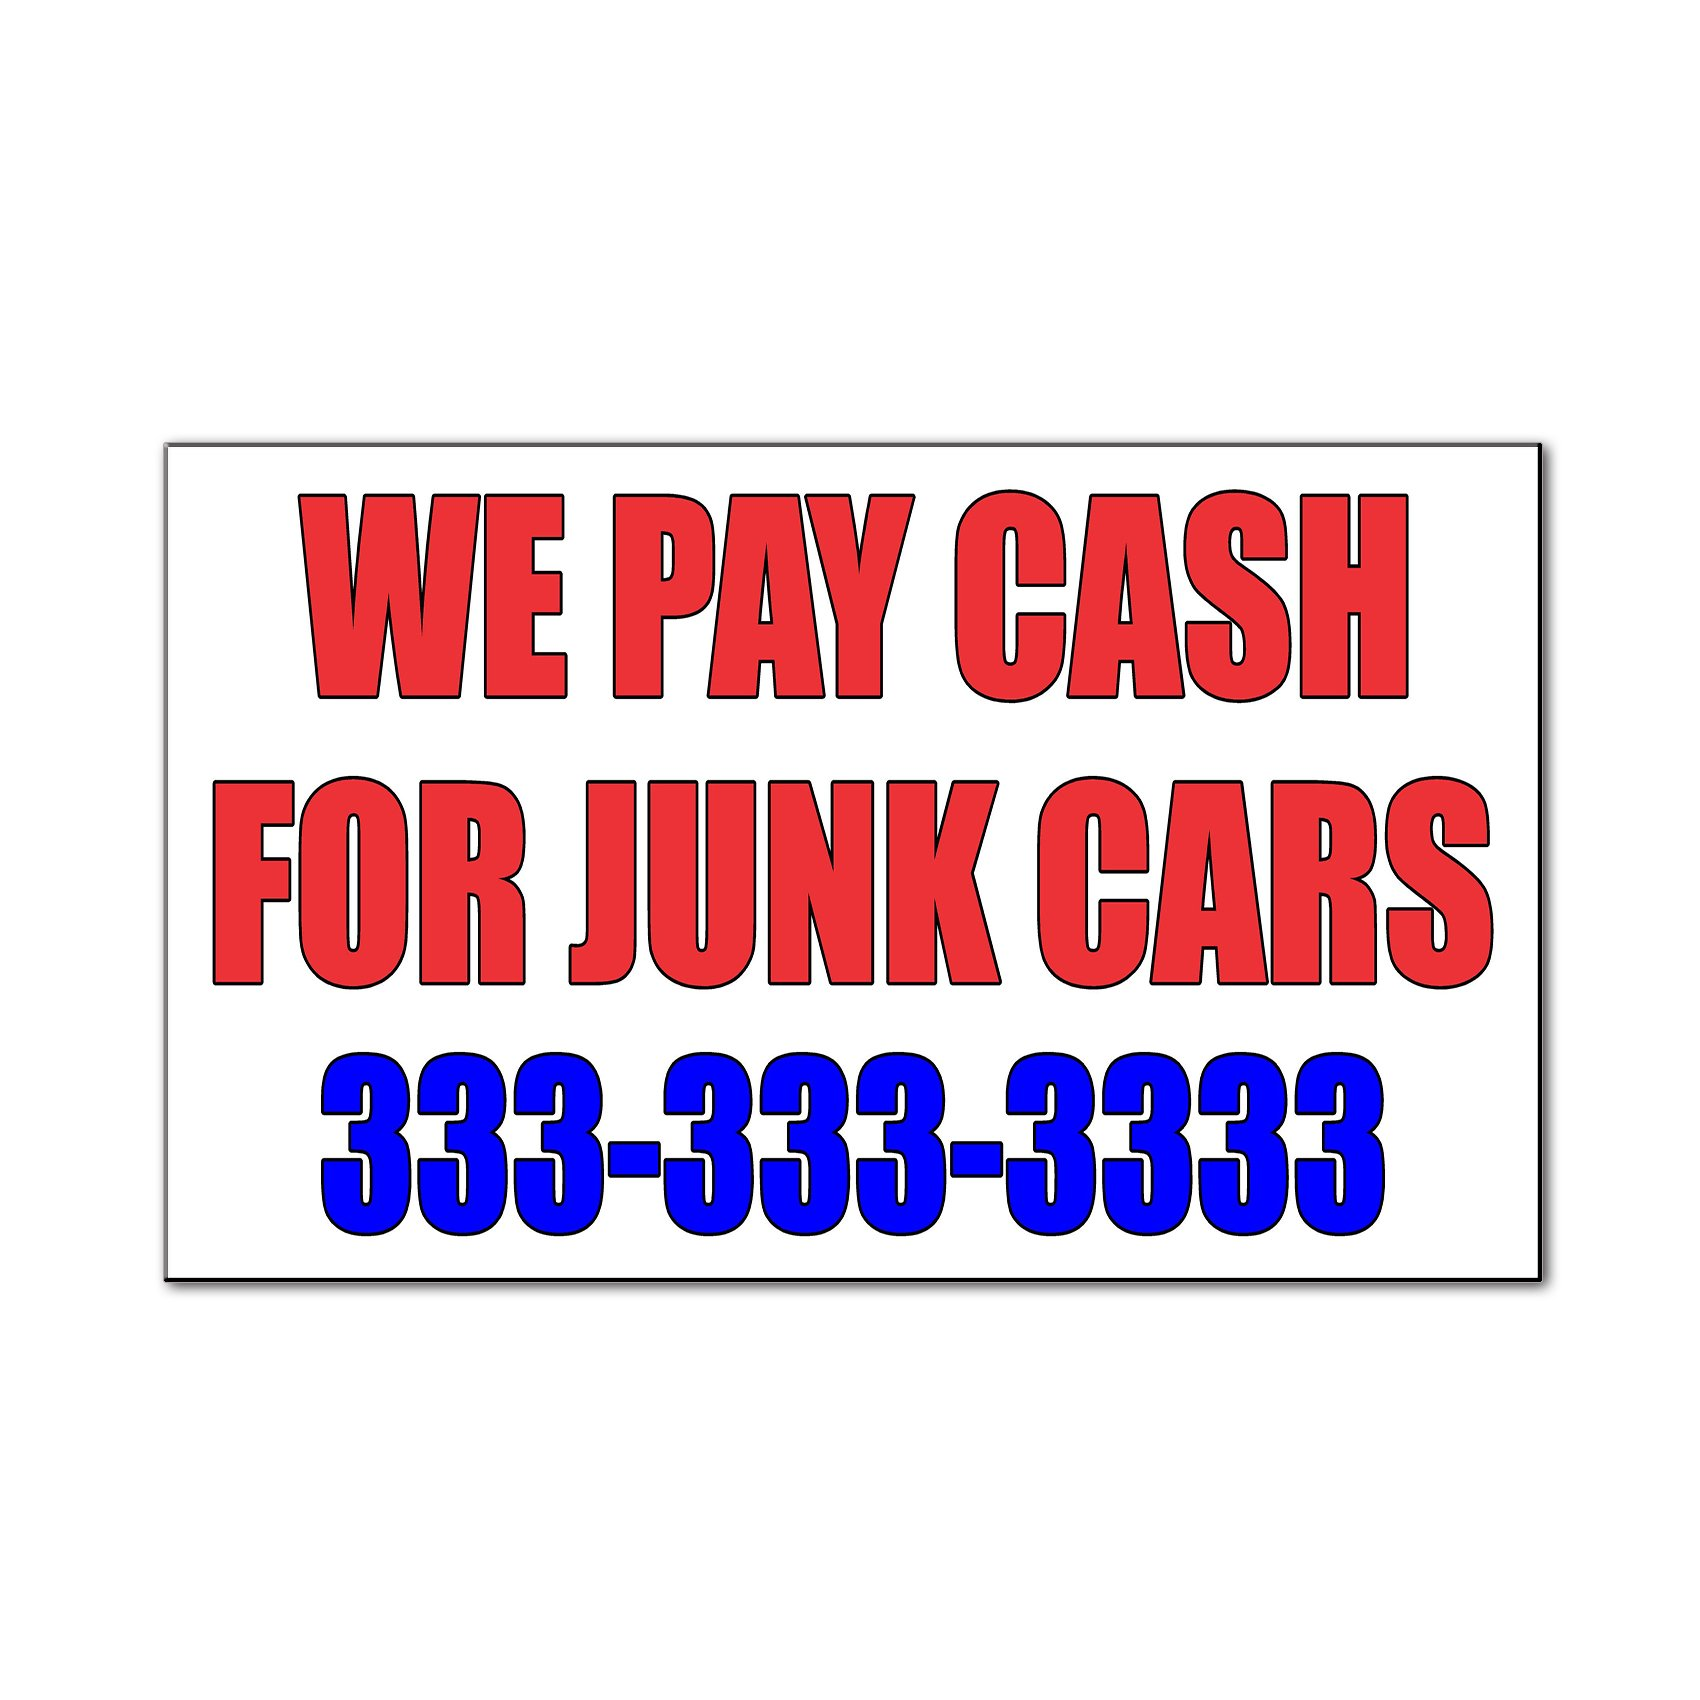 We Pay Cash For Junk Cars Car Door Magnets Magnetic Signs